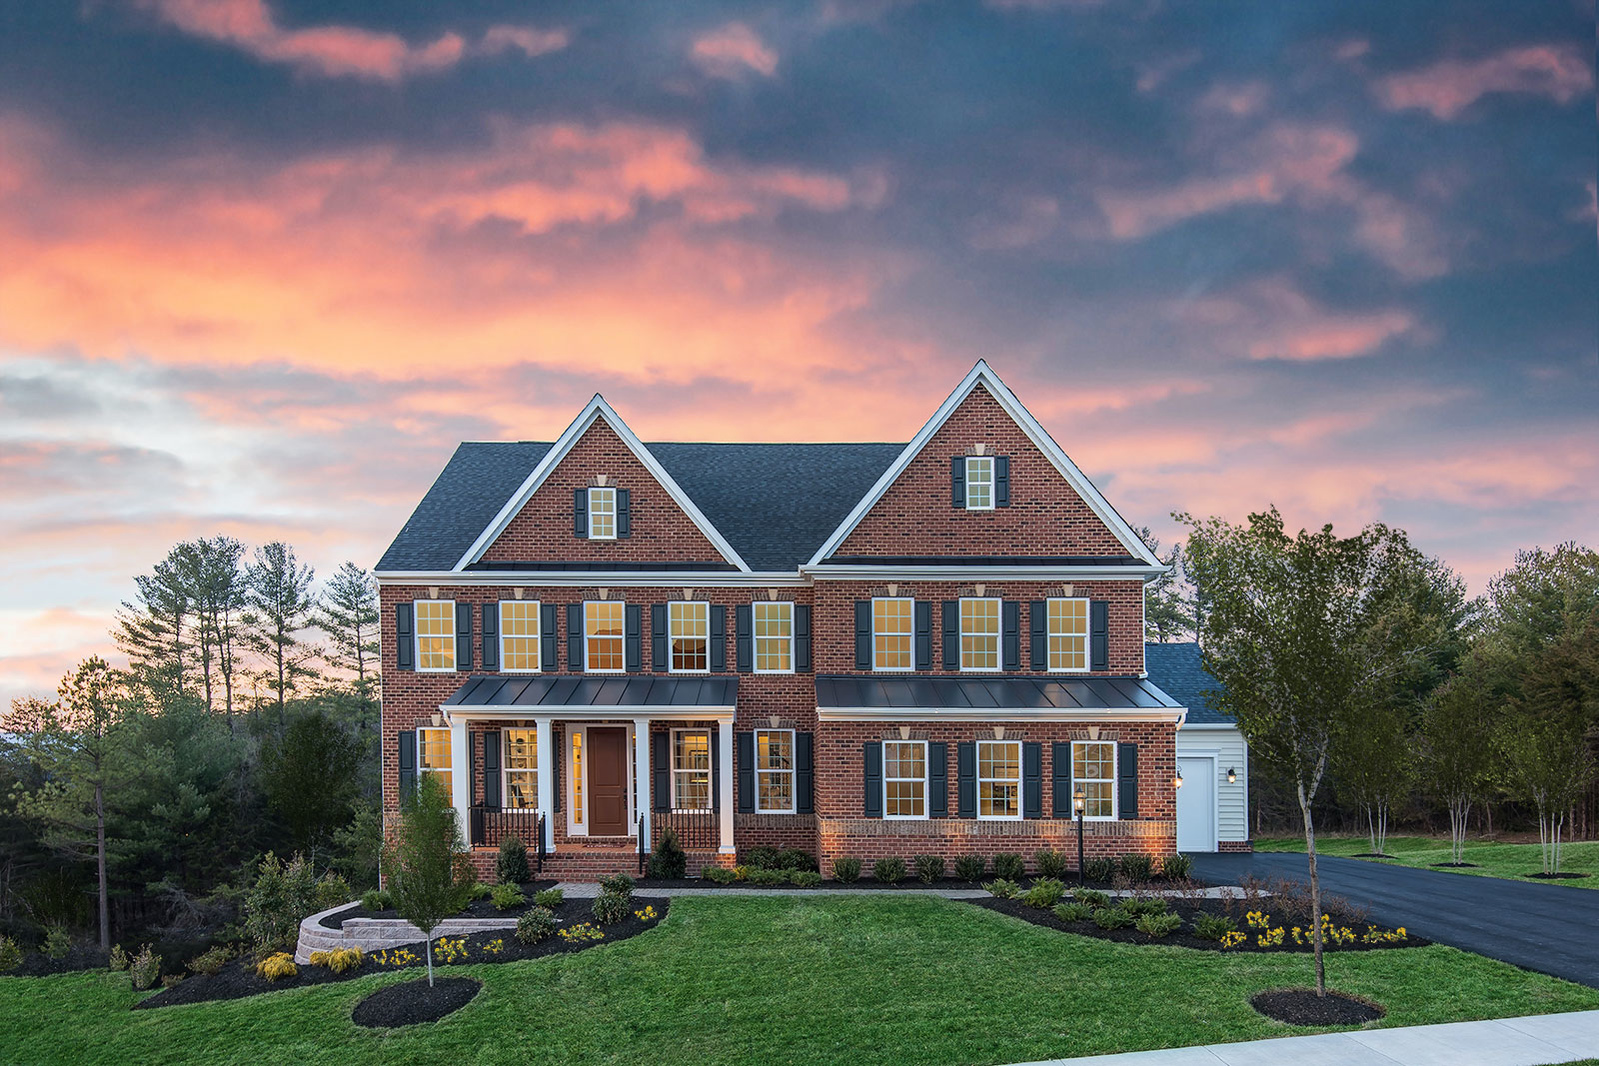 "<a href=""#visit"">Visit this beautiful community</a> and start planning your dream home today!<br /><br /><br />"